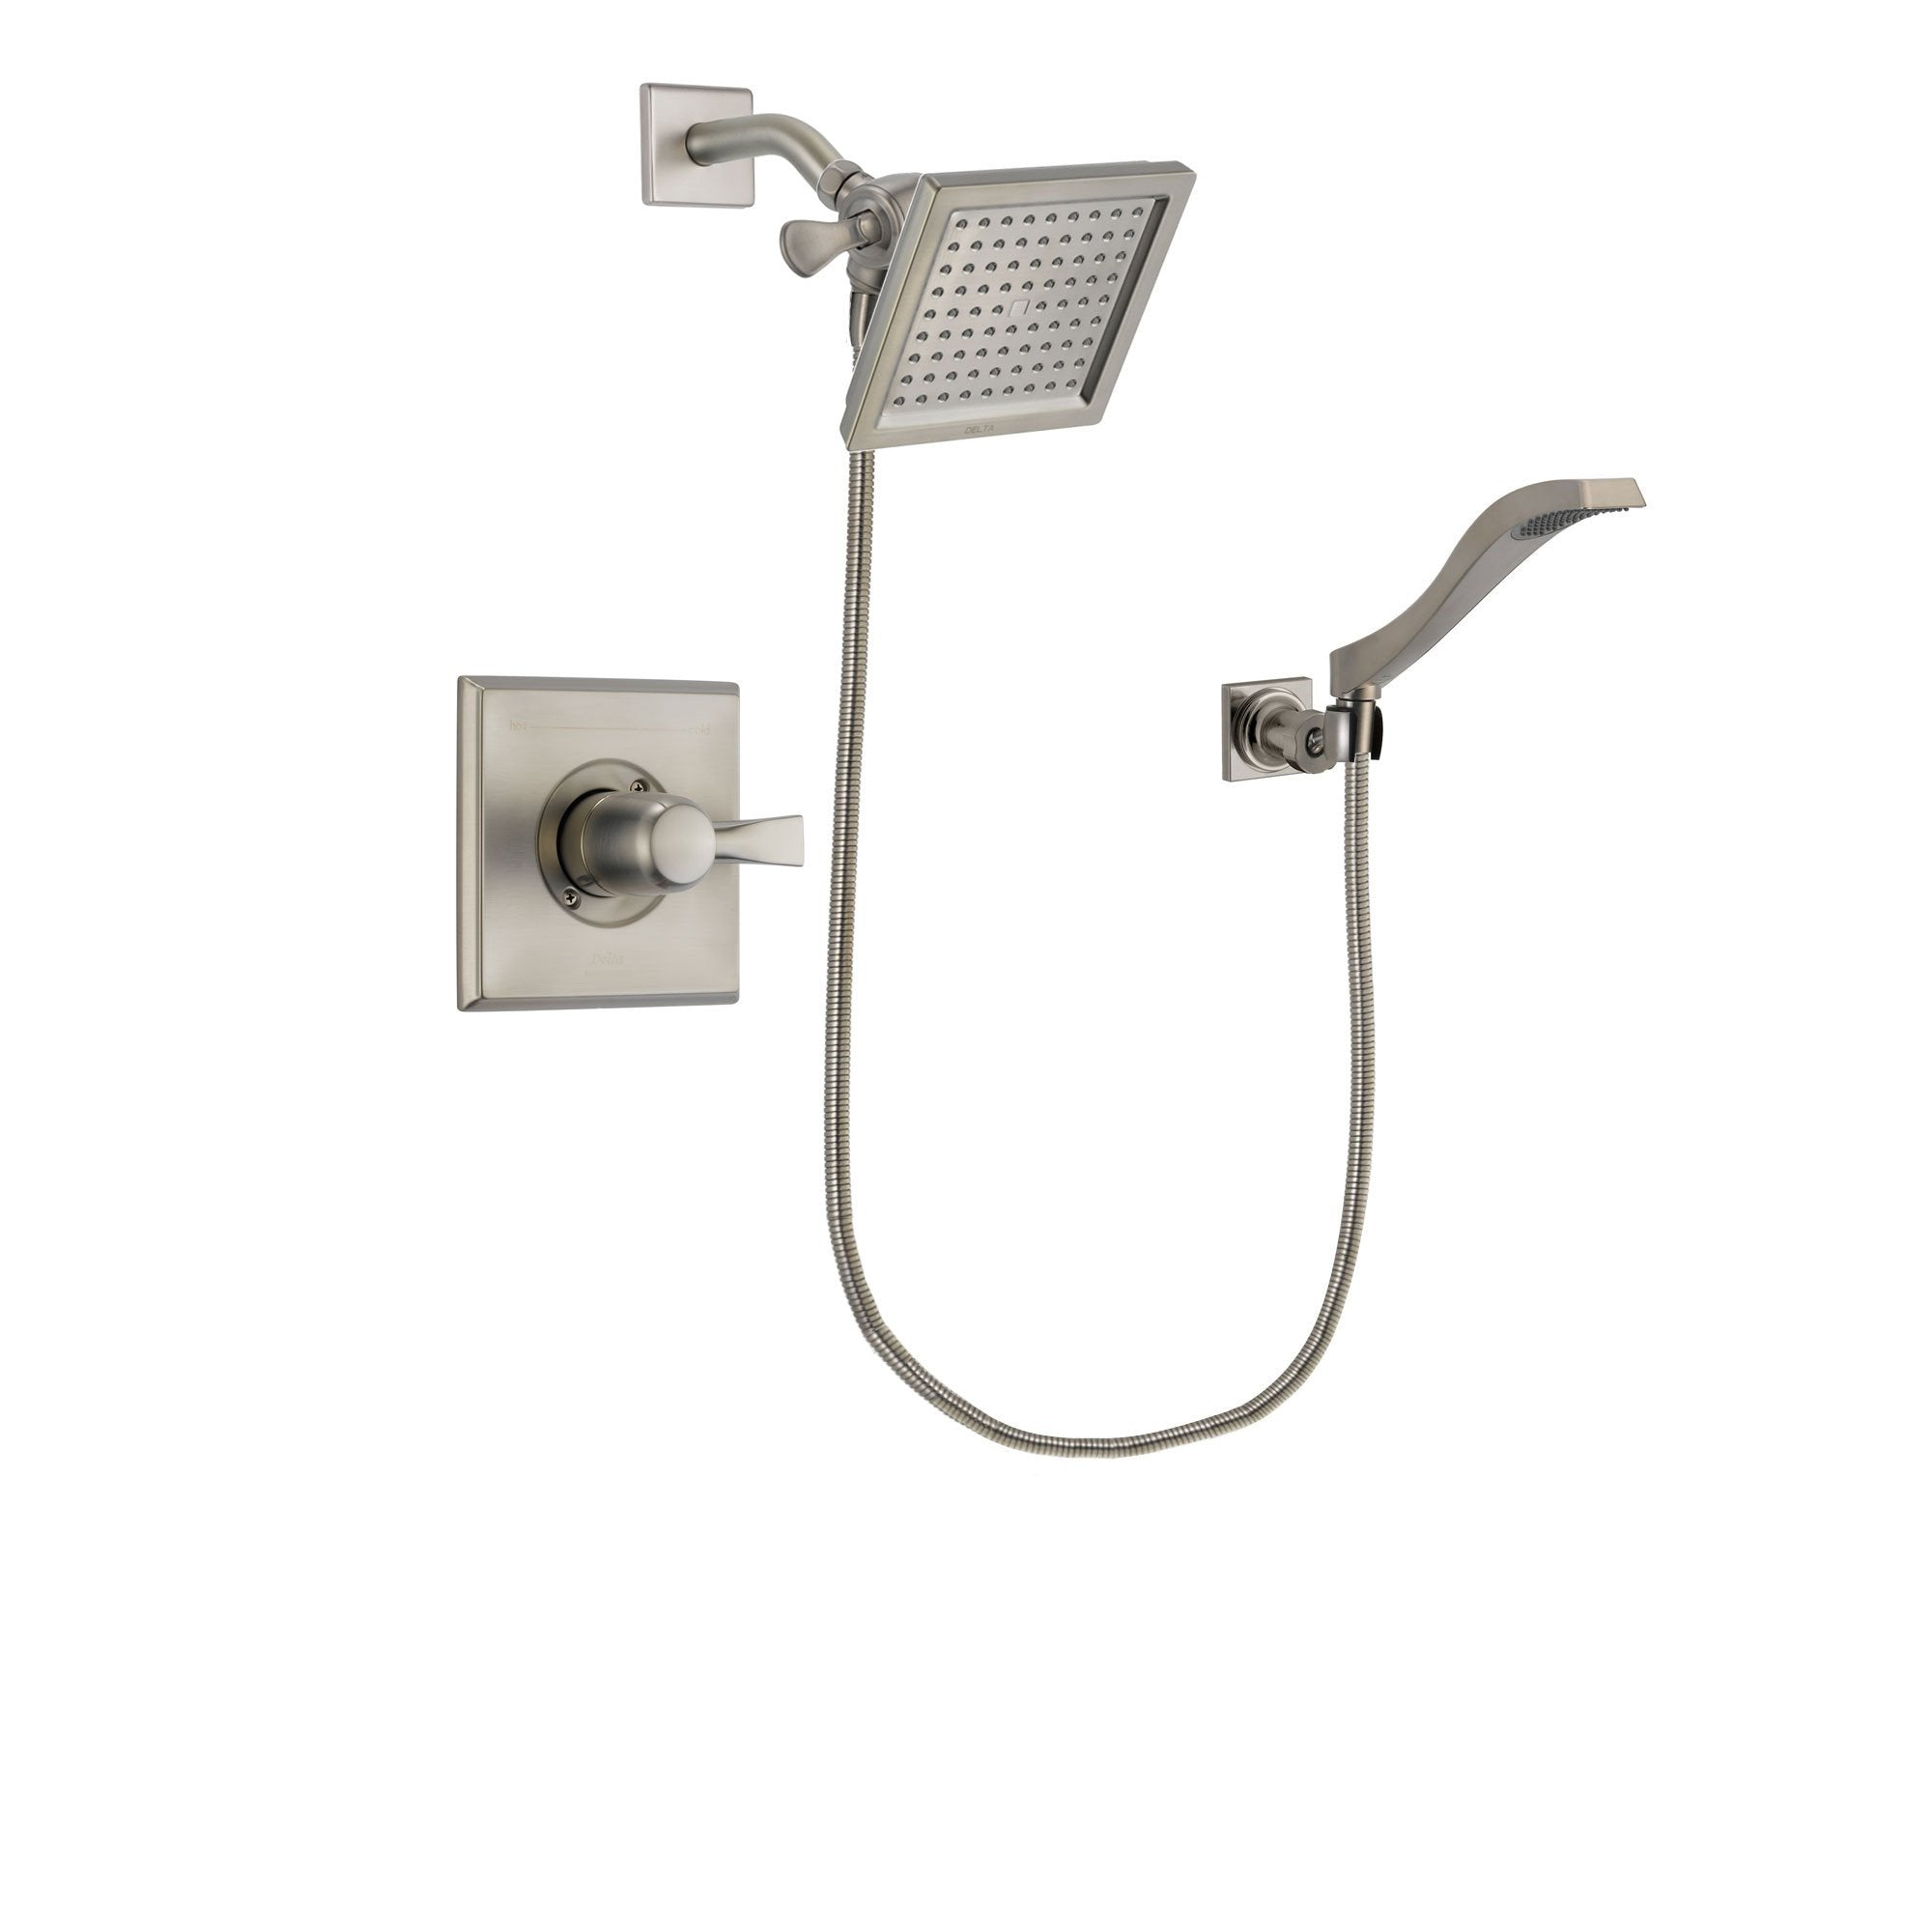 Delta Dryden Stainless Steel Finish Shower Faucet System w/ Hand Spray DSP2082V